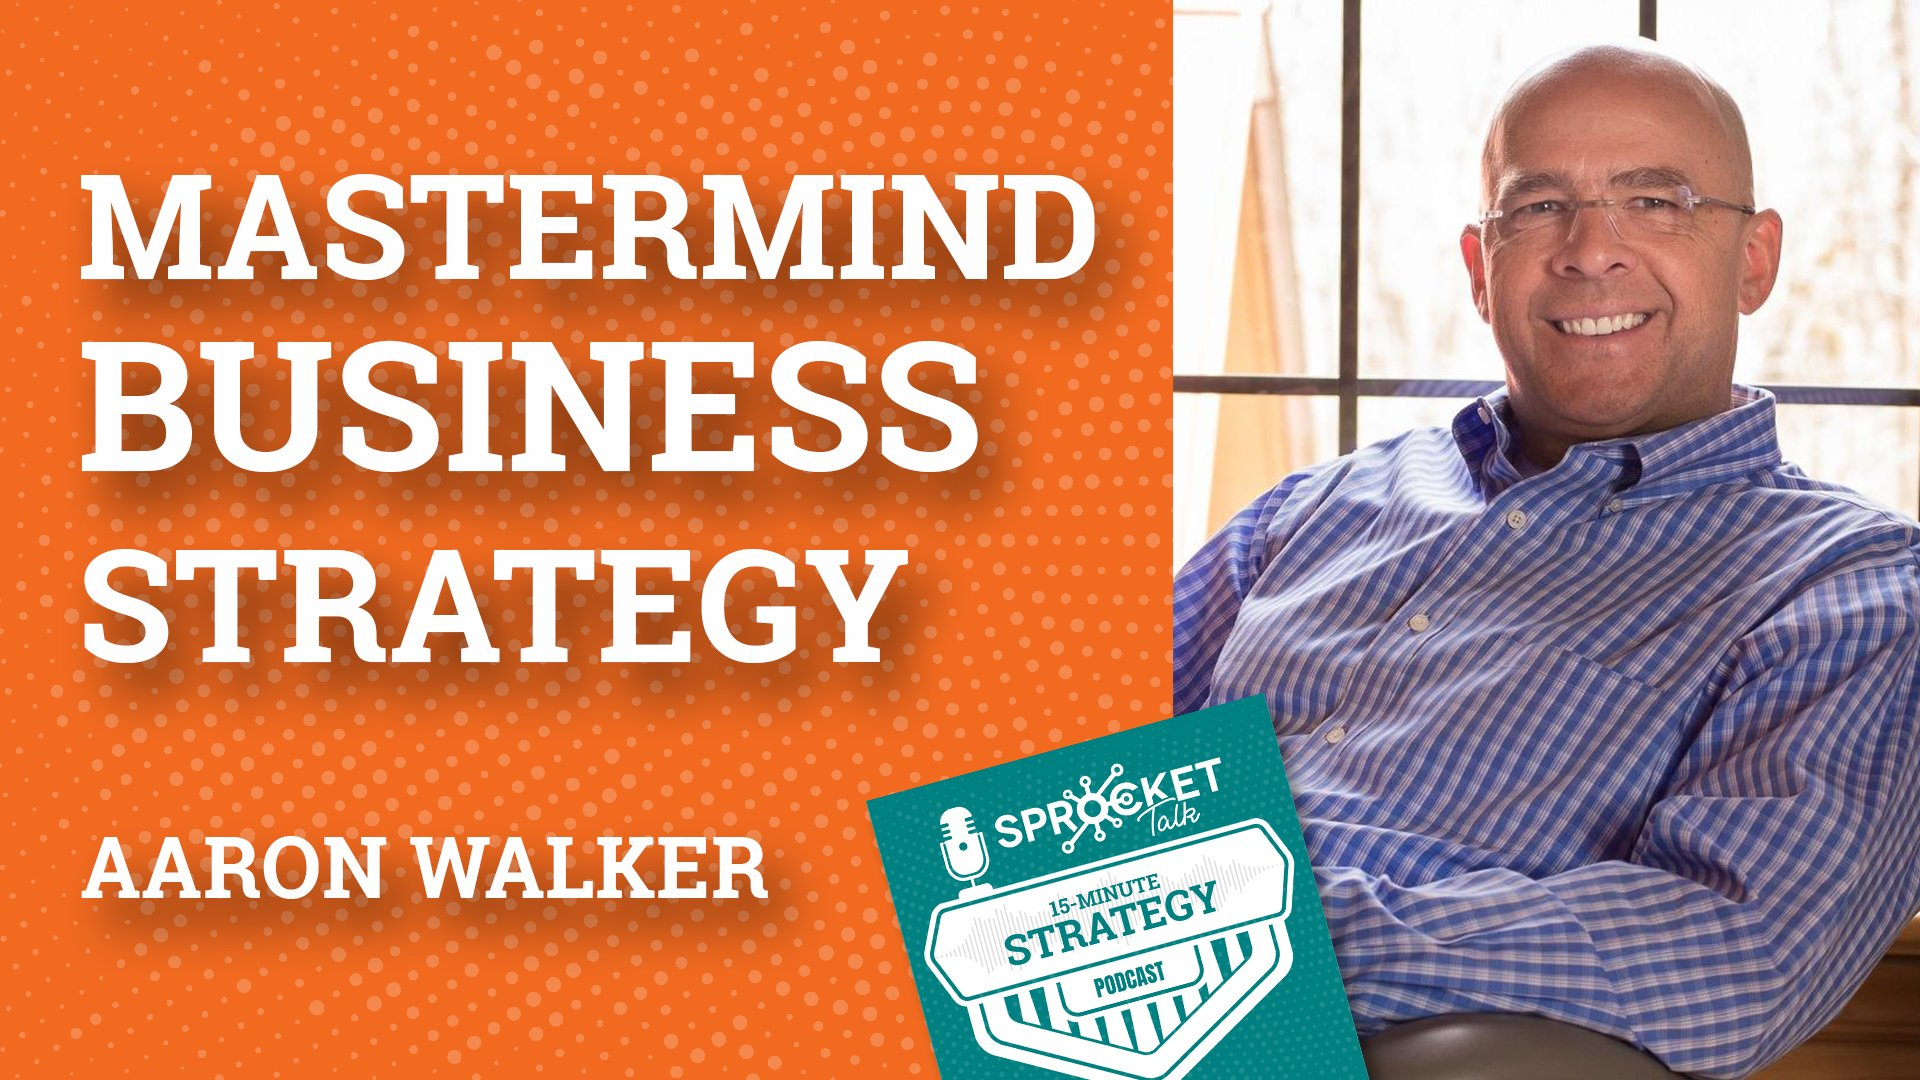 Aaron Walker on a Mastermind Group Business Strategy | 15-Minute Strategy Podcast